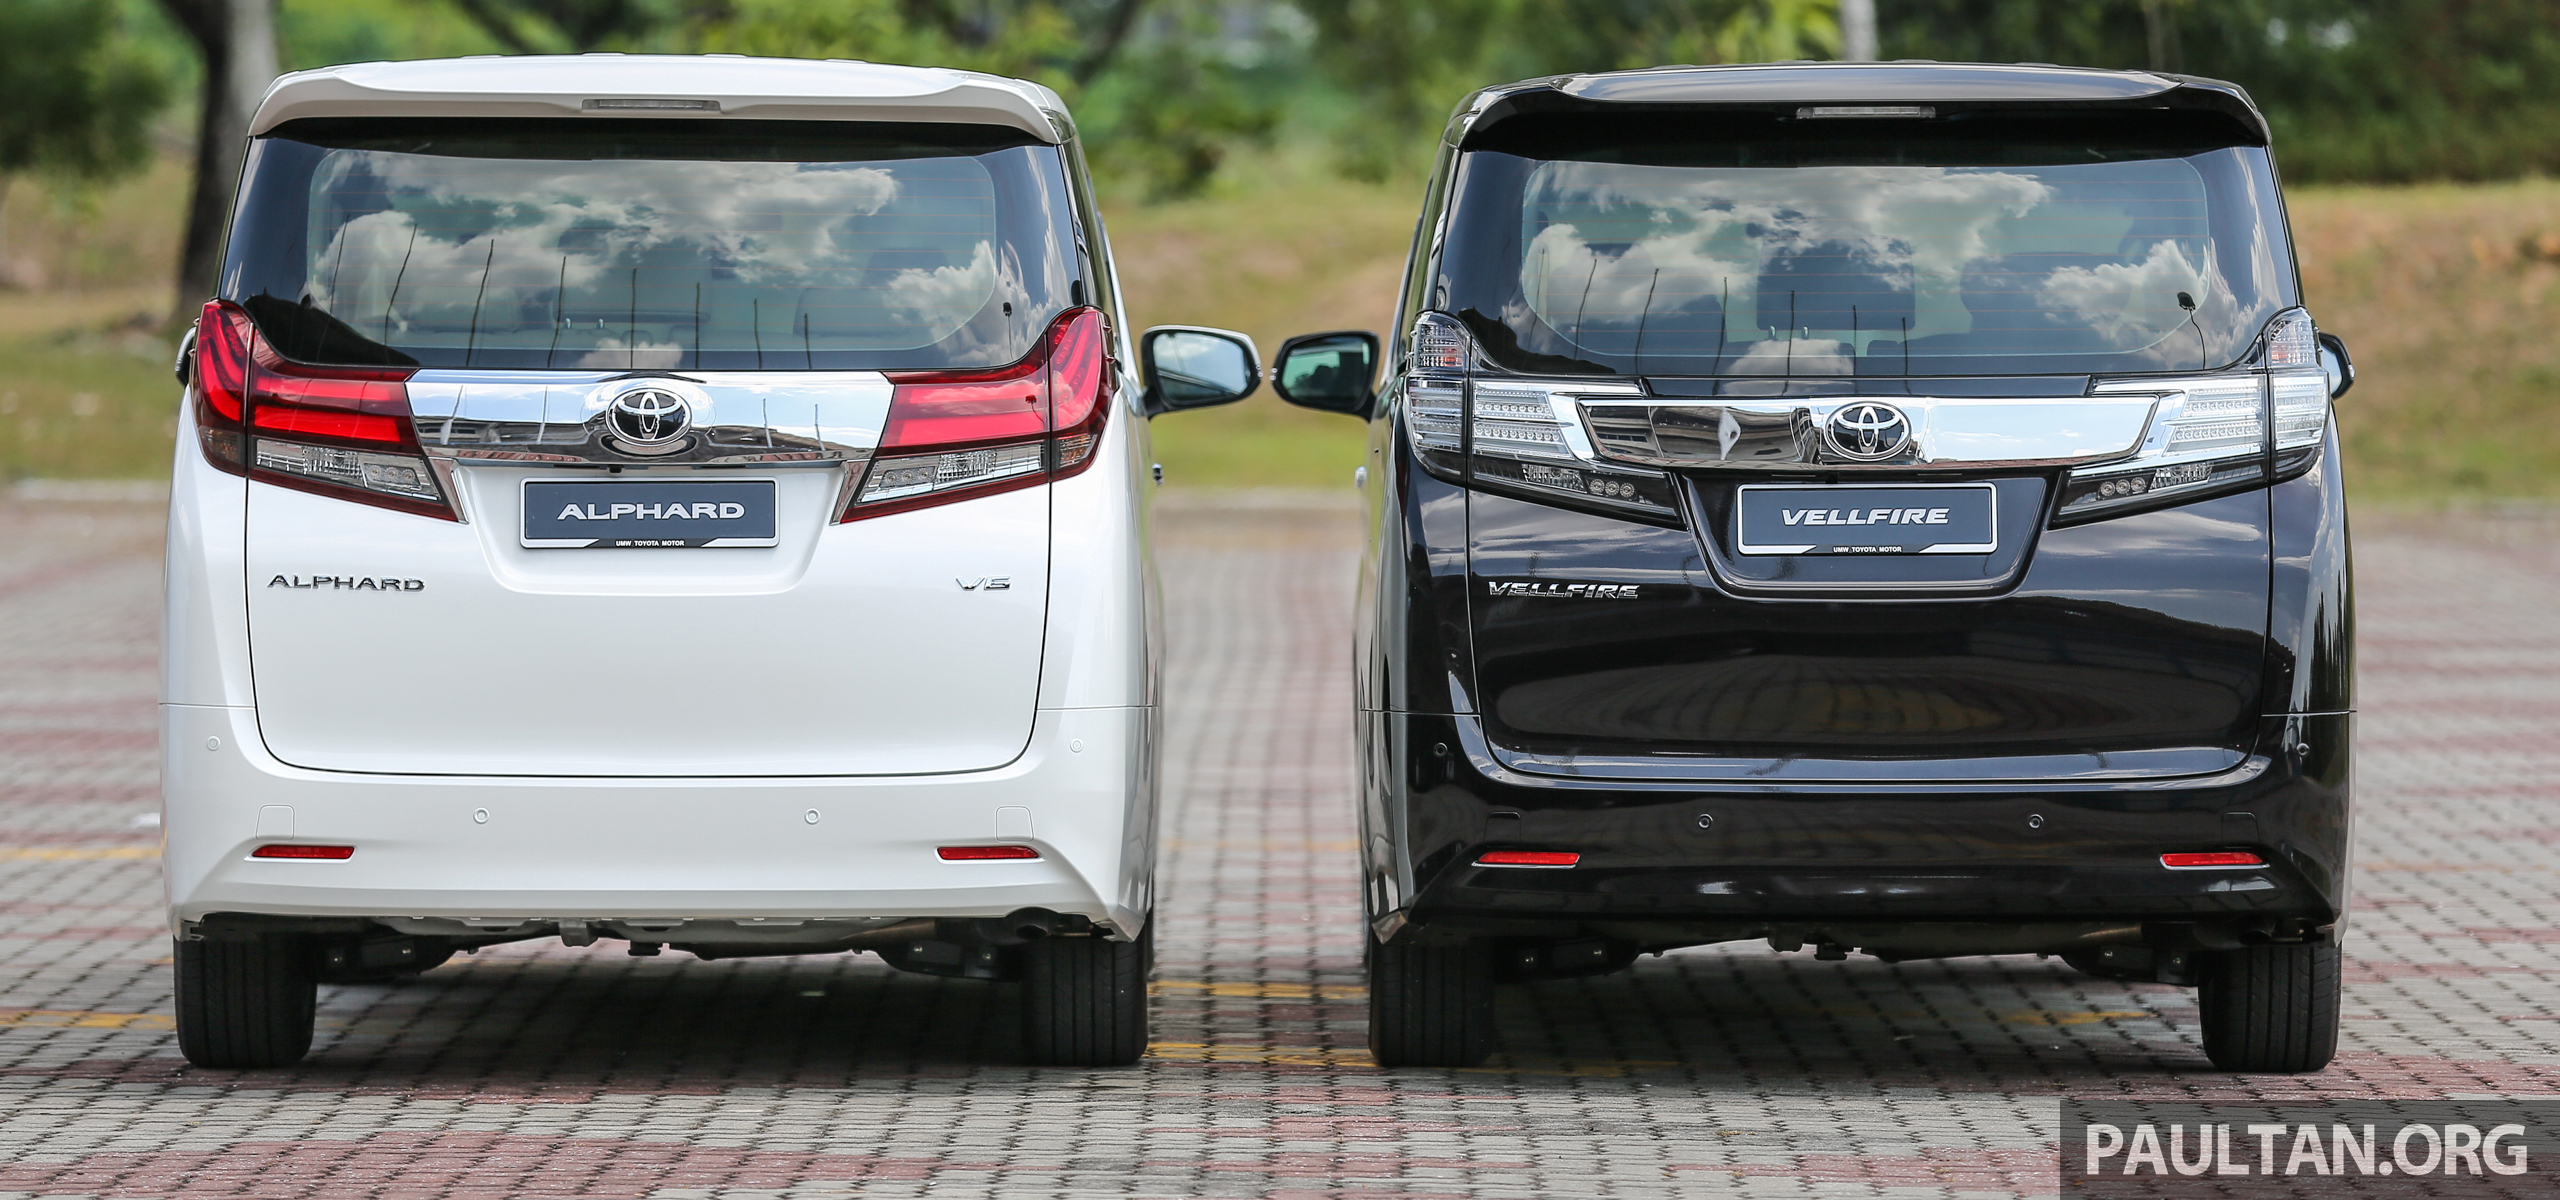 GALLERY: 2016 Toyota Alphard 3.5 and Vellfire 2.5 Image 529967